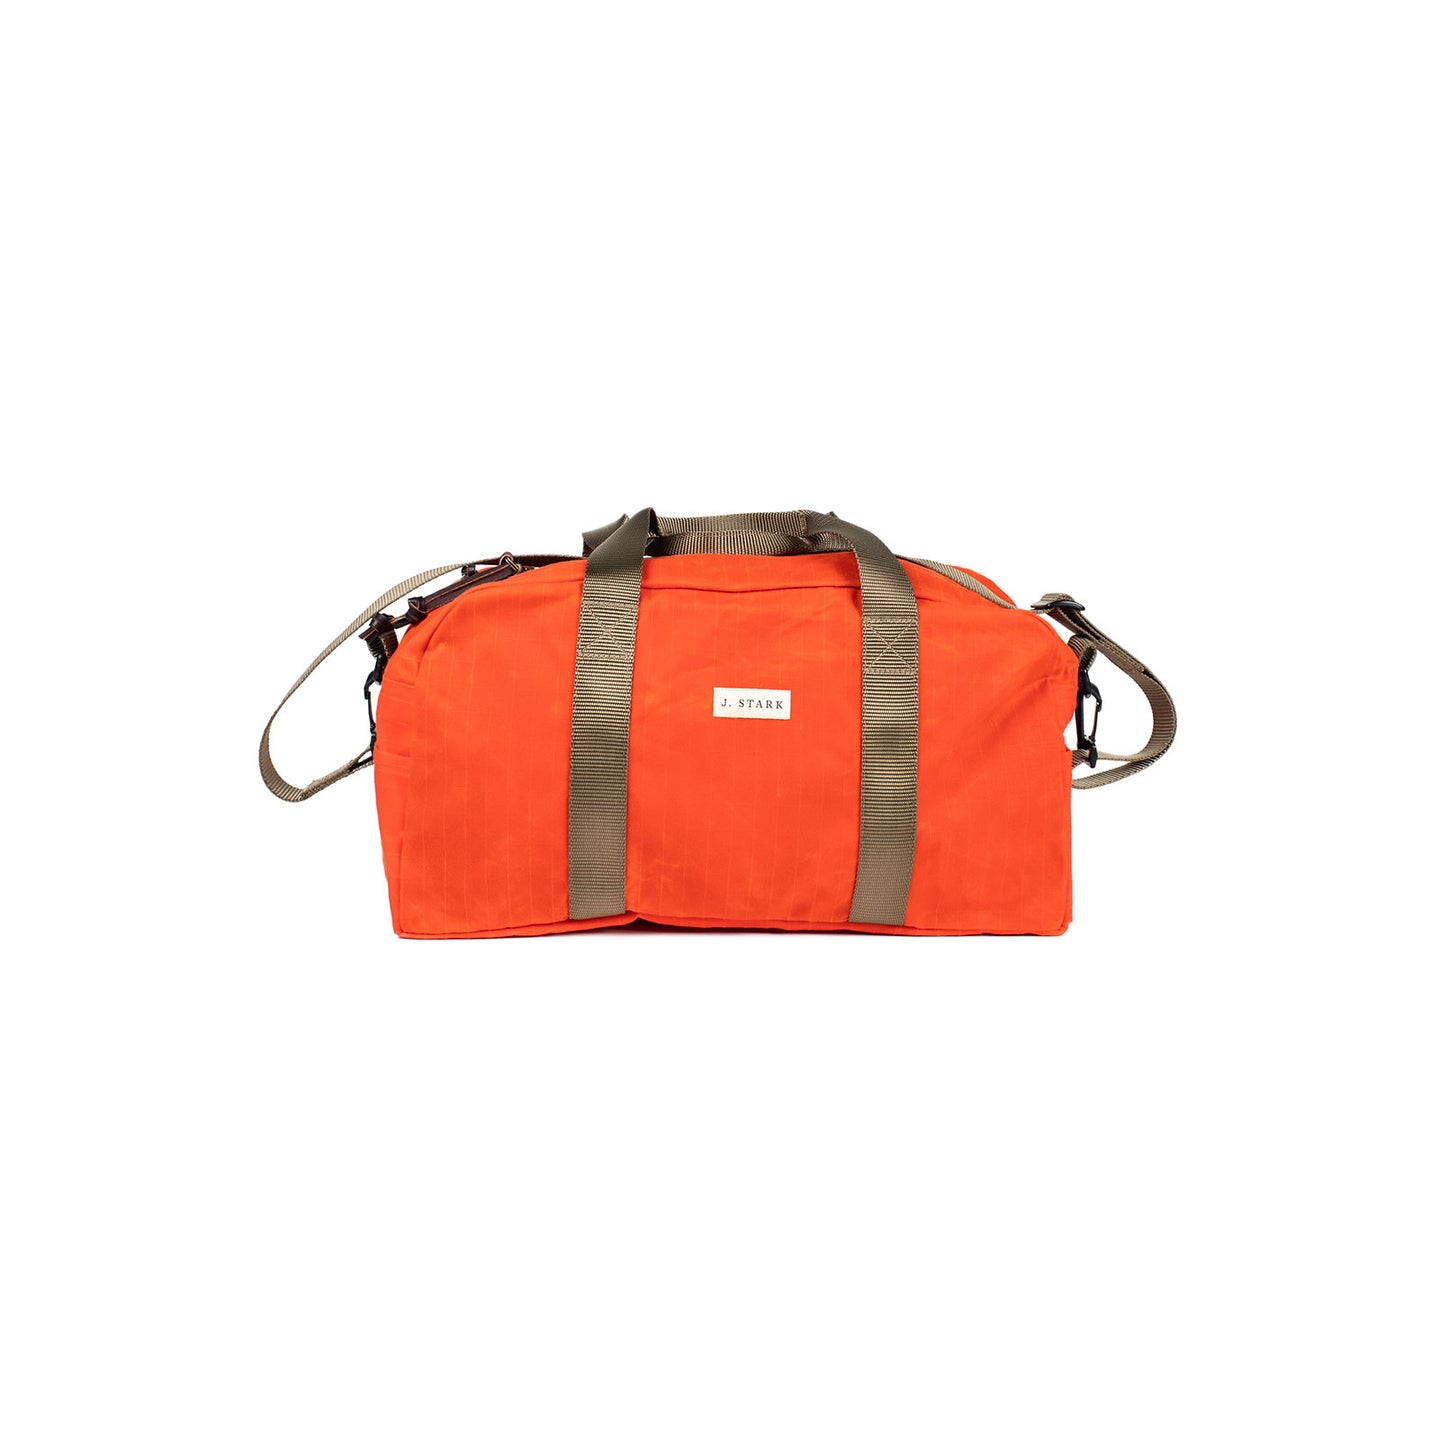 Bryant Medium Duffle Bag